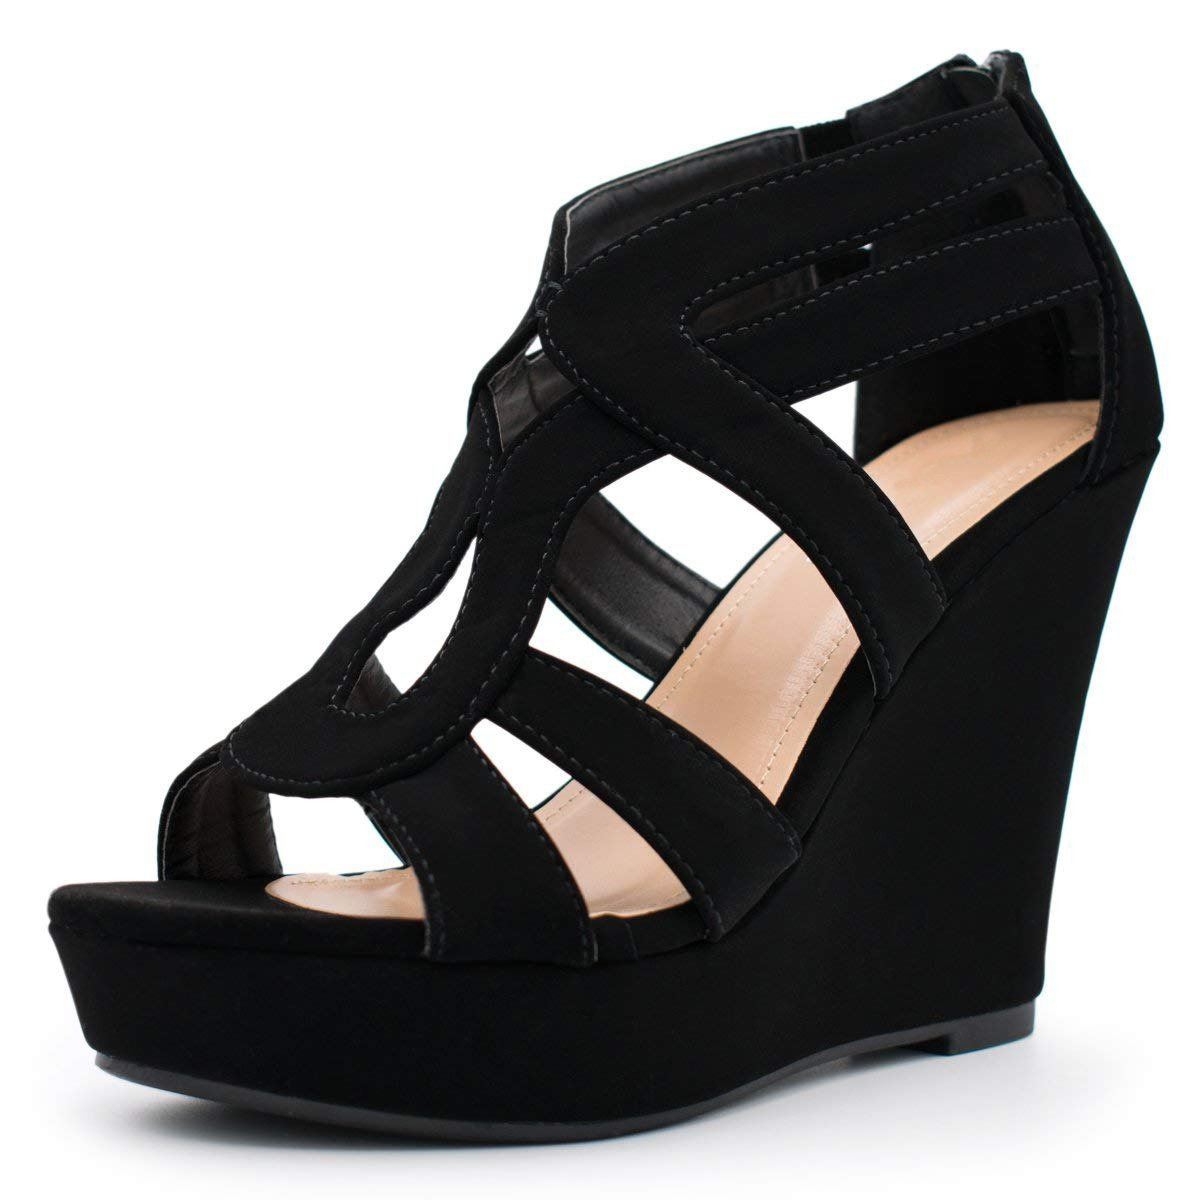 Women's Wedge Sandal Cutout Strappy Back Zipper High Heel Party Platform Summer Shoes Black 7